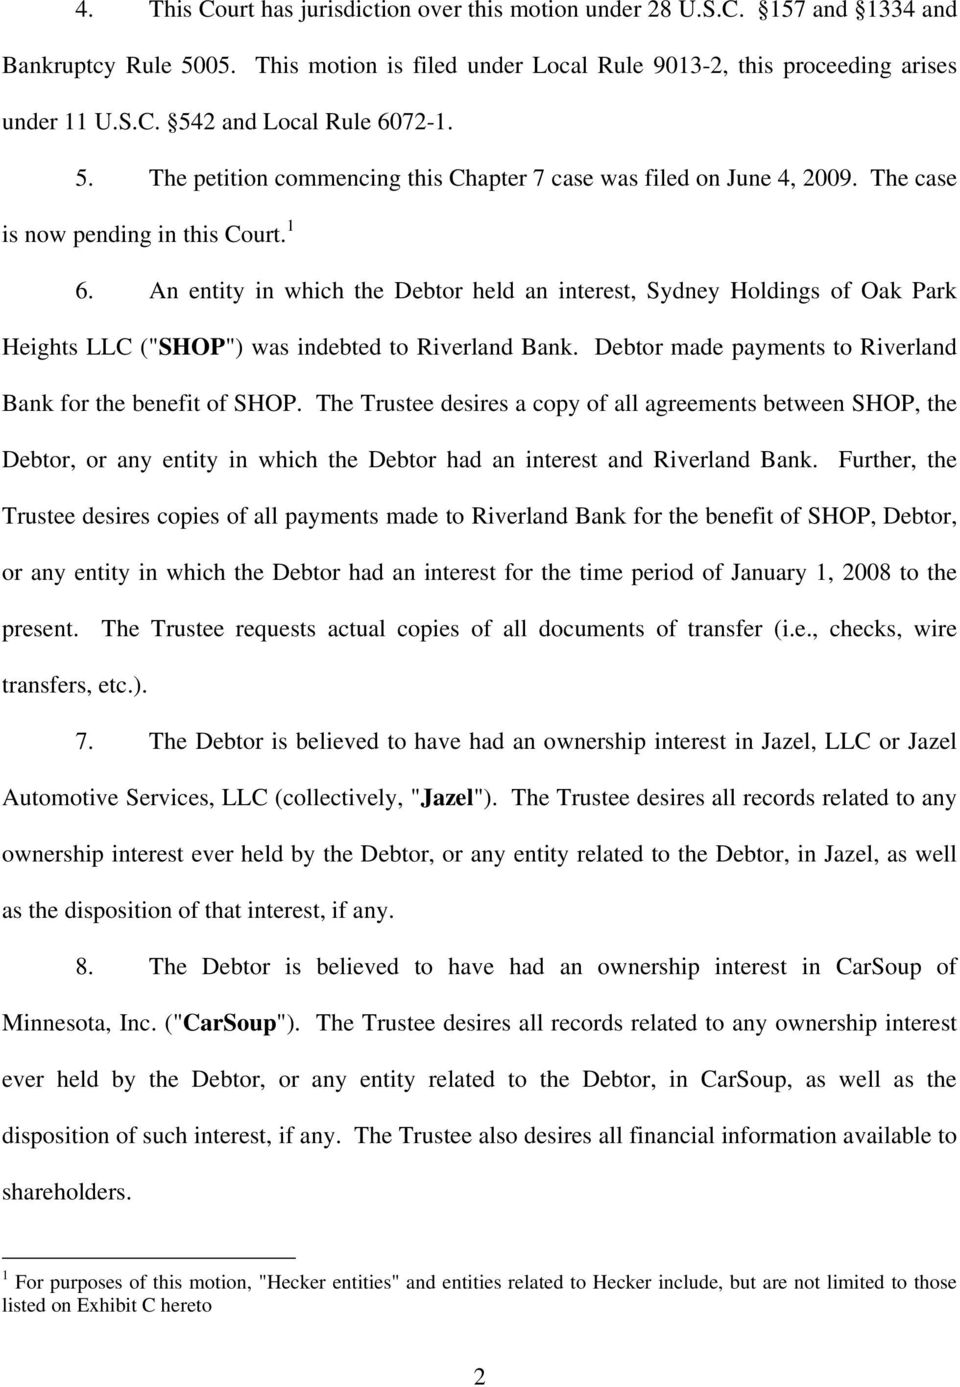 "An entity in which the Debtor held an interest, Sydney Holdings of Oak Park Heights LLC (""SHOP"") was indebted to Riverland Bank. Debtor made payments to Riverland Bank for the benefit of SHOP."